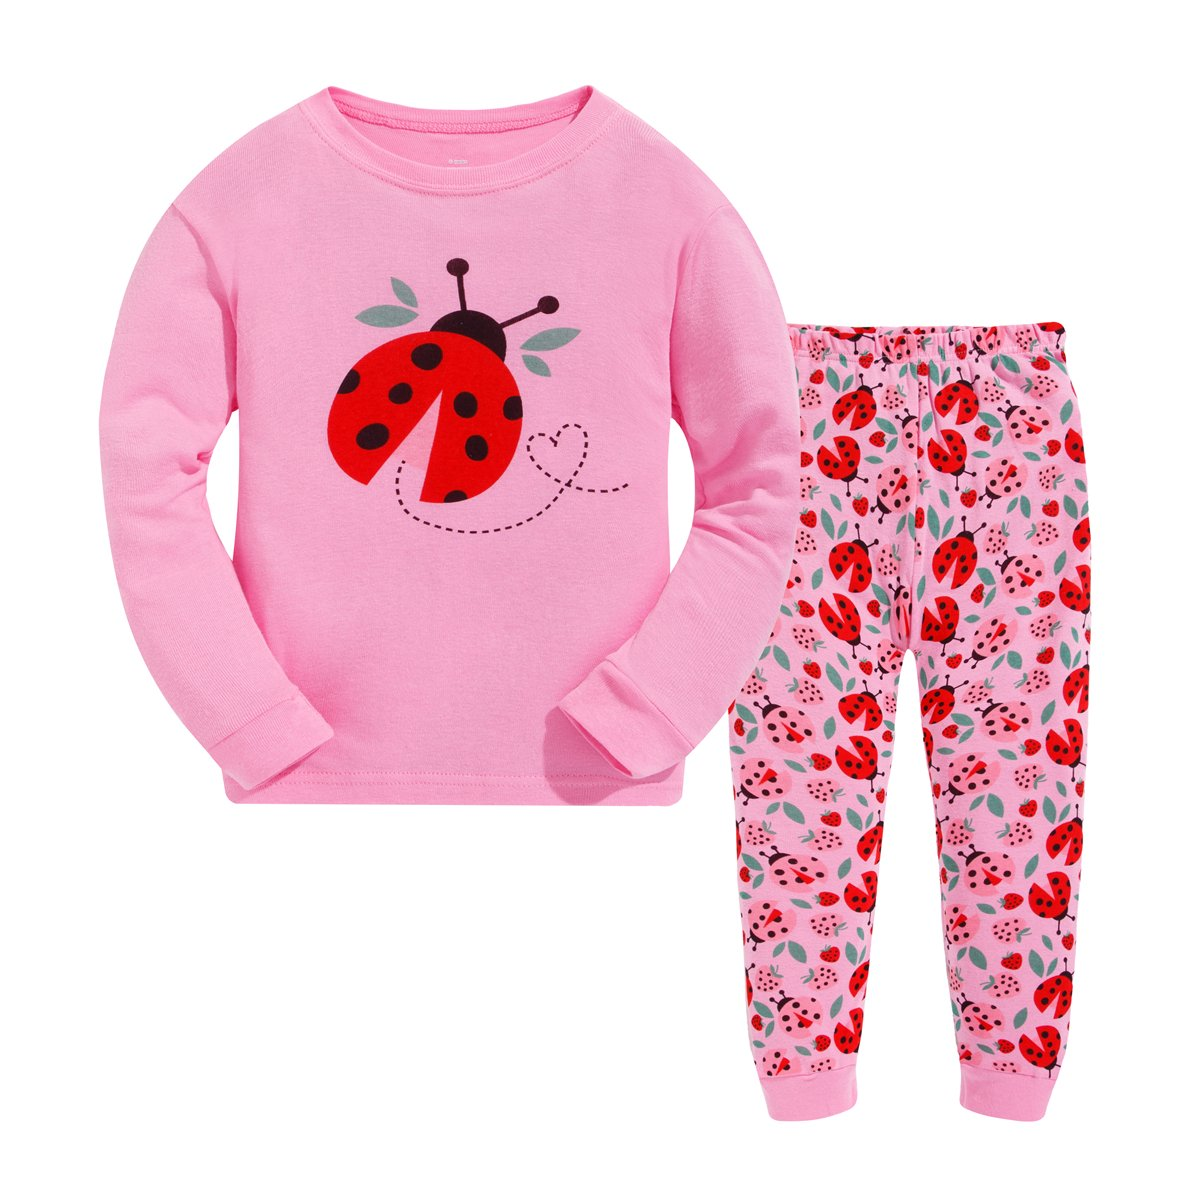 Cczmfeas Girls Pajamas Sets Kids Pjs Cotton Ladybug Long Sleeve Sleepwears 2-7 Years